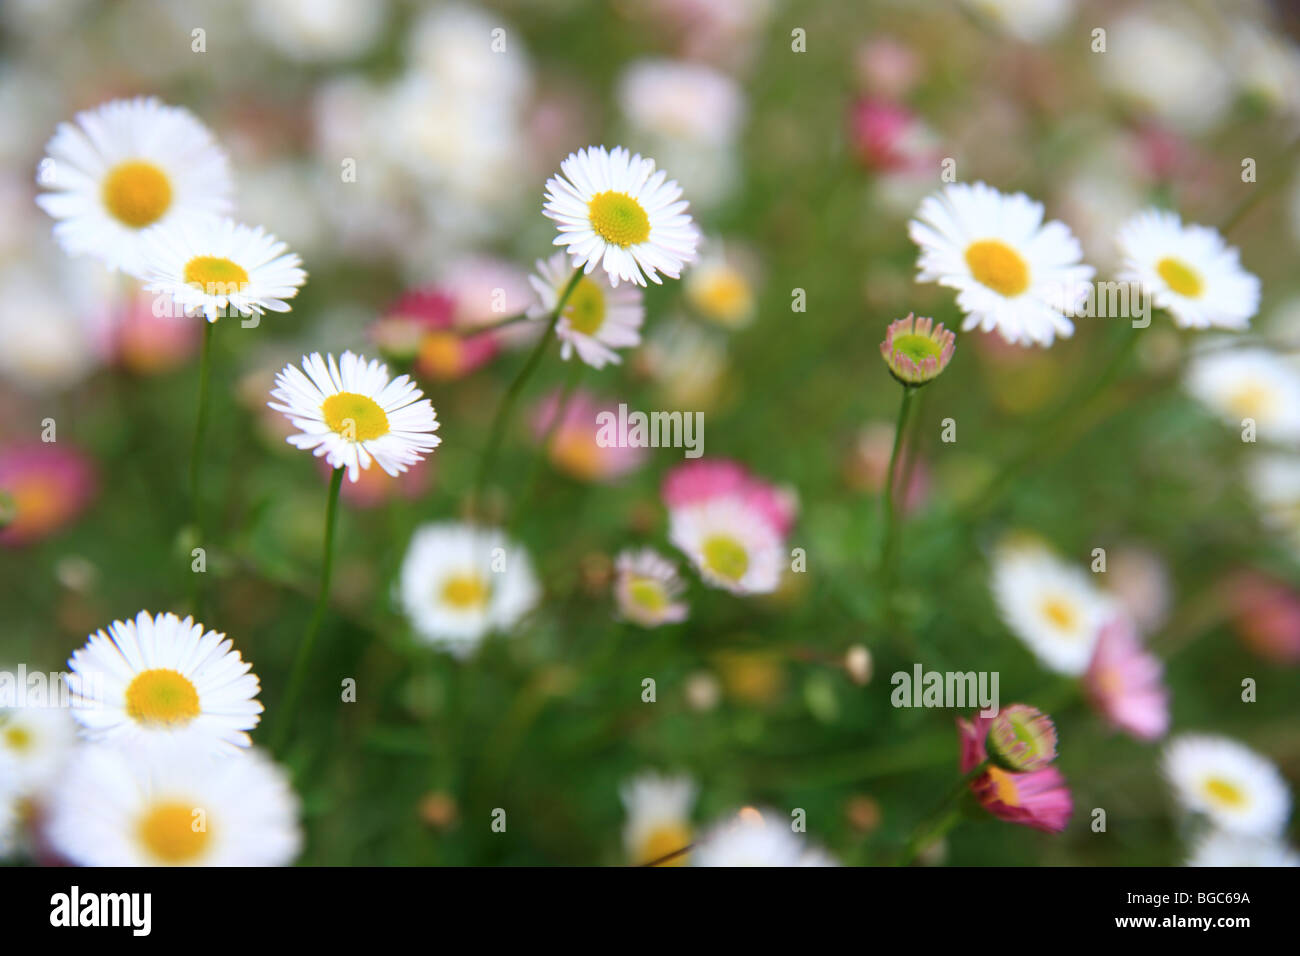 Daisy Pink White Ground Cover Flowers Garden Uk Stock Photo